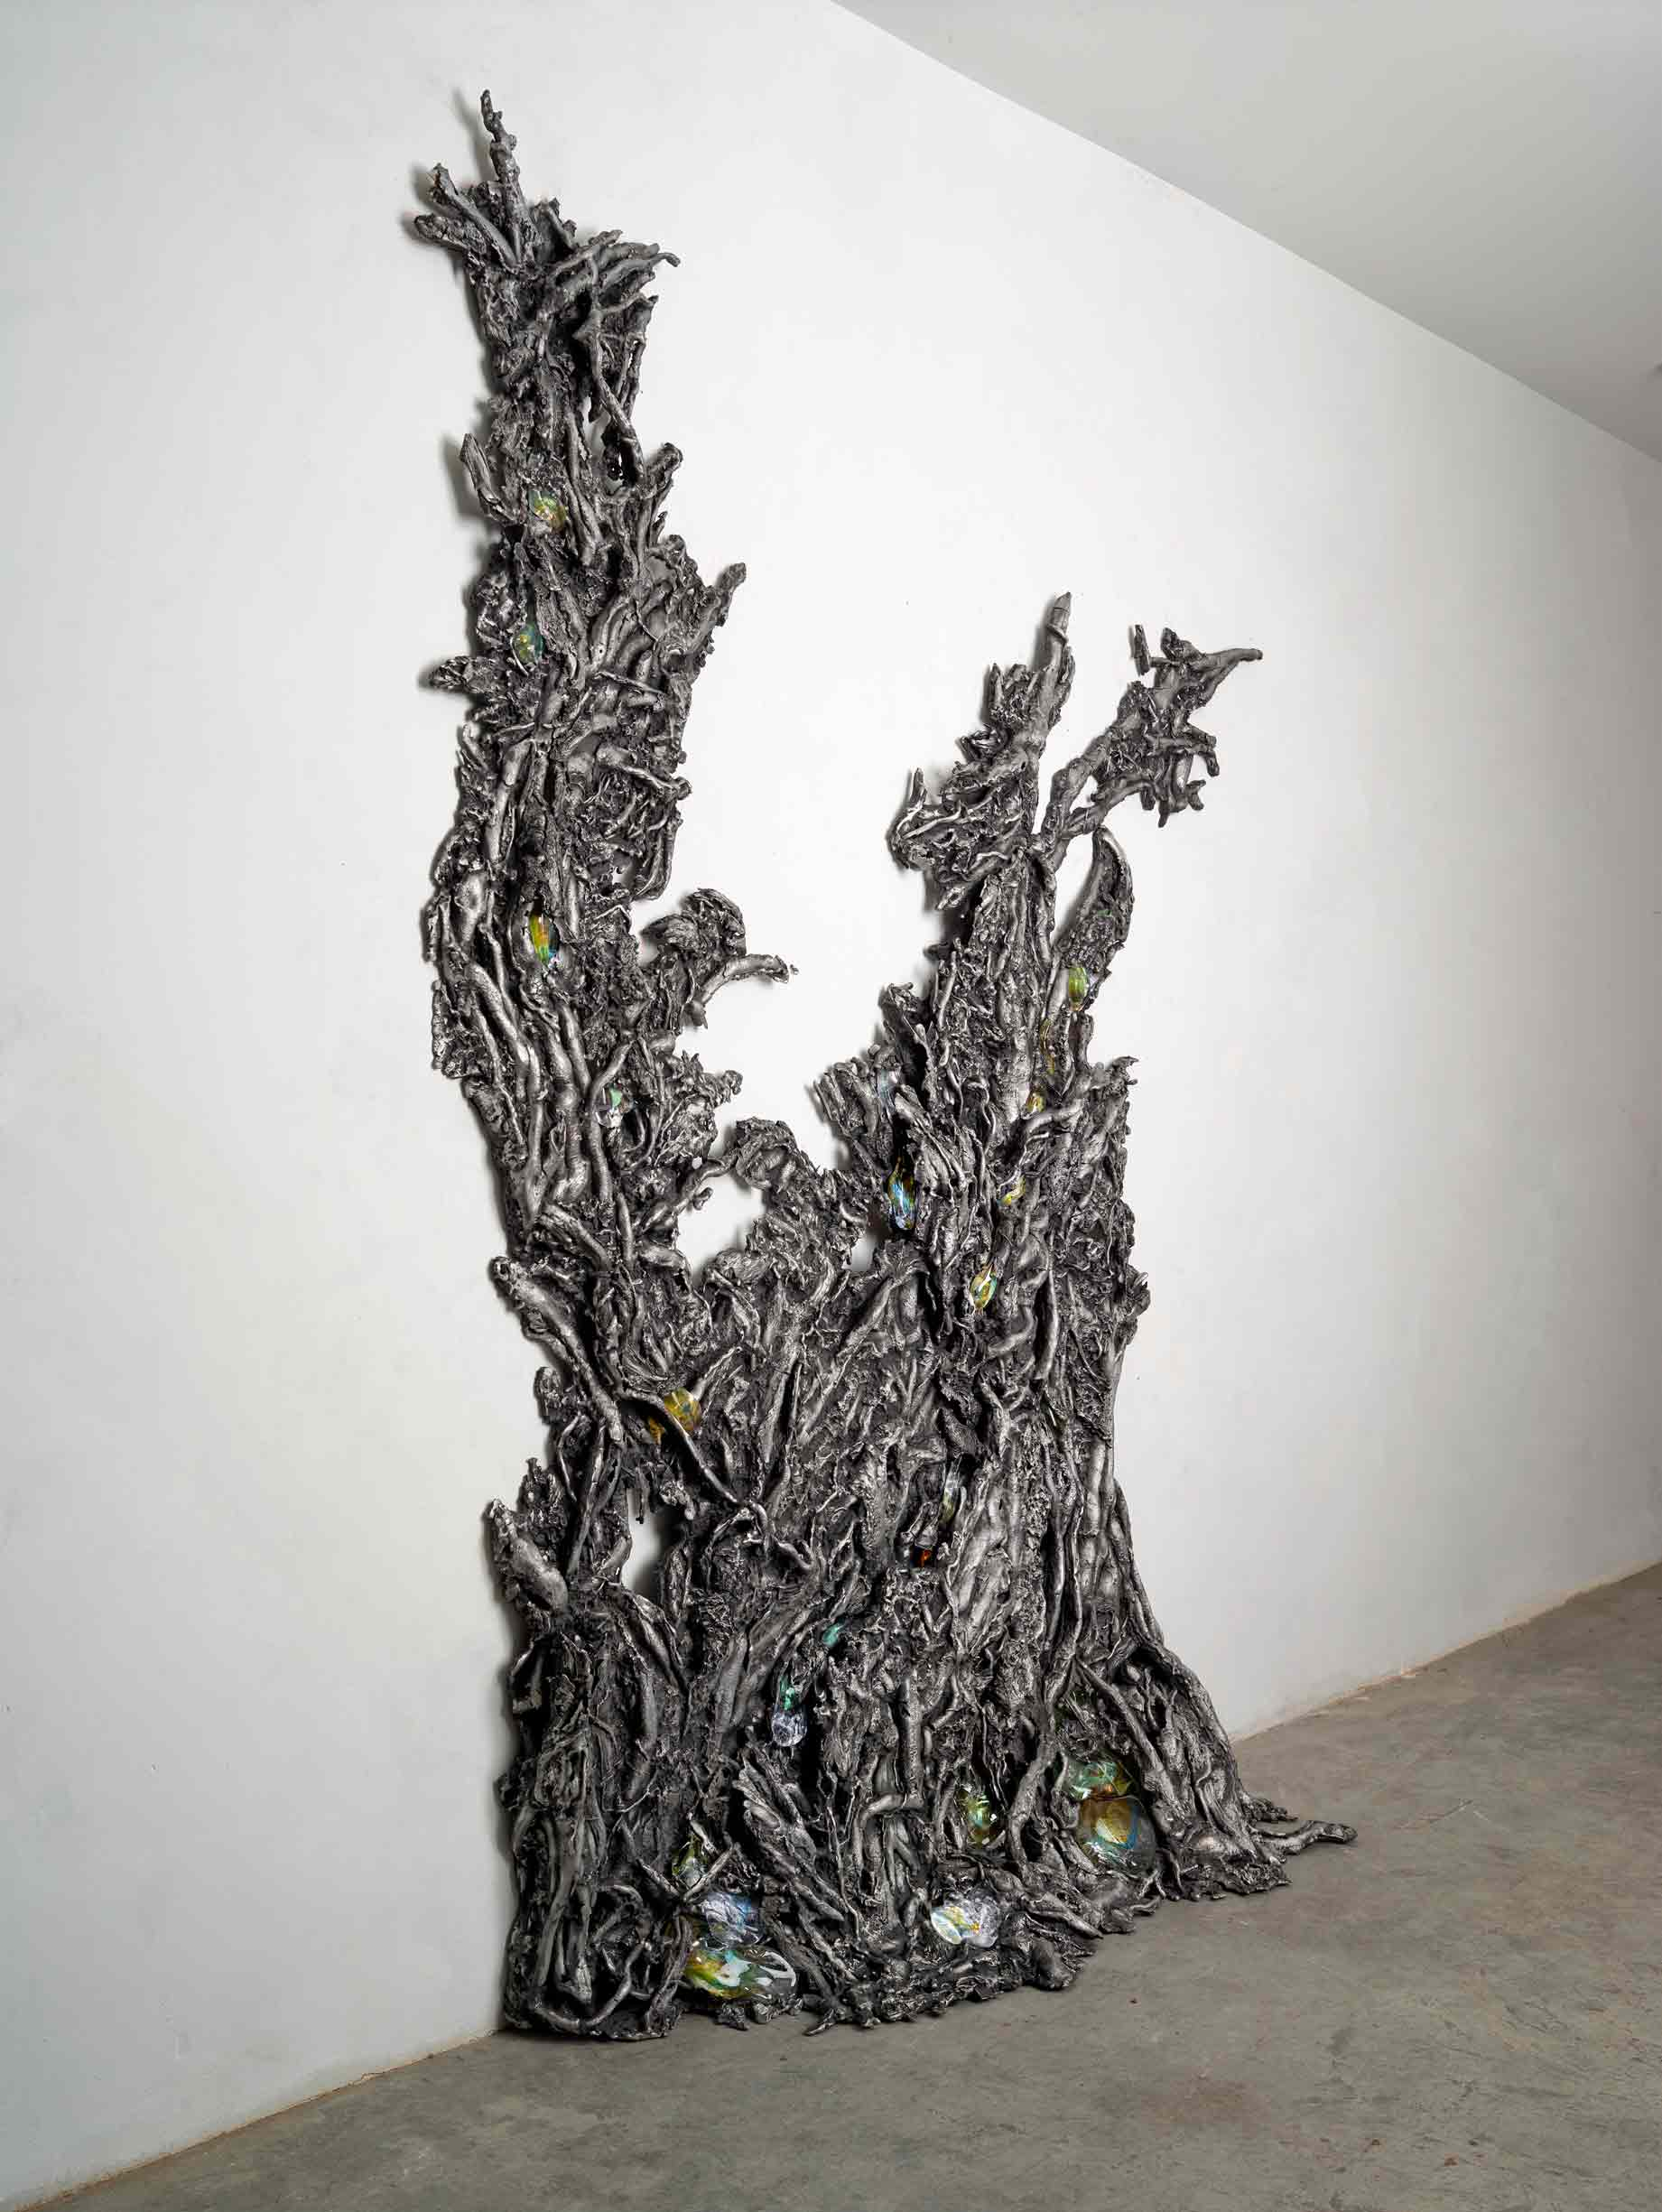 ENTWINED GROWTH VI, 2019 by Cristina Iglesias. Sculpture in Aluminum and glass produced in Alfa Arte